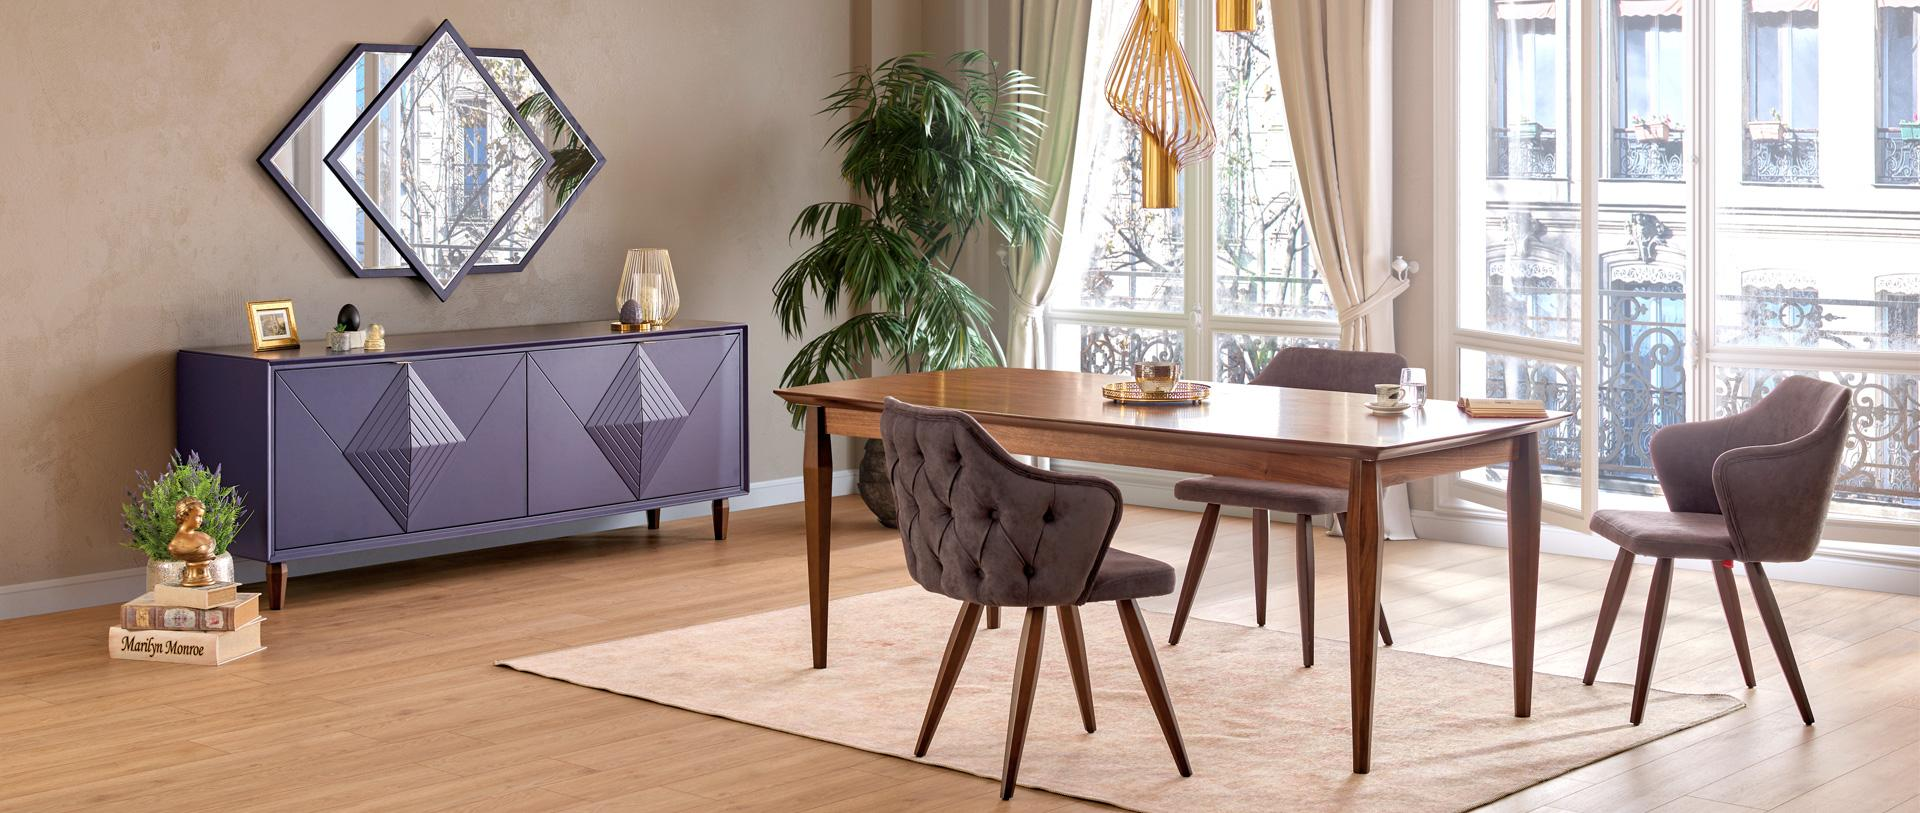 Mobilier Dining - MARRIOT